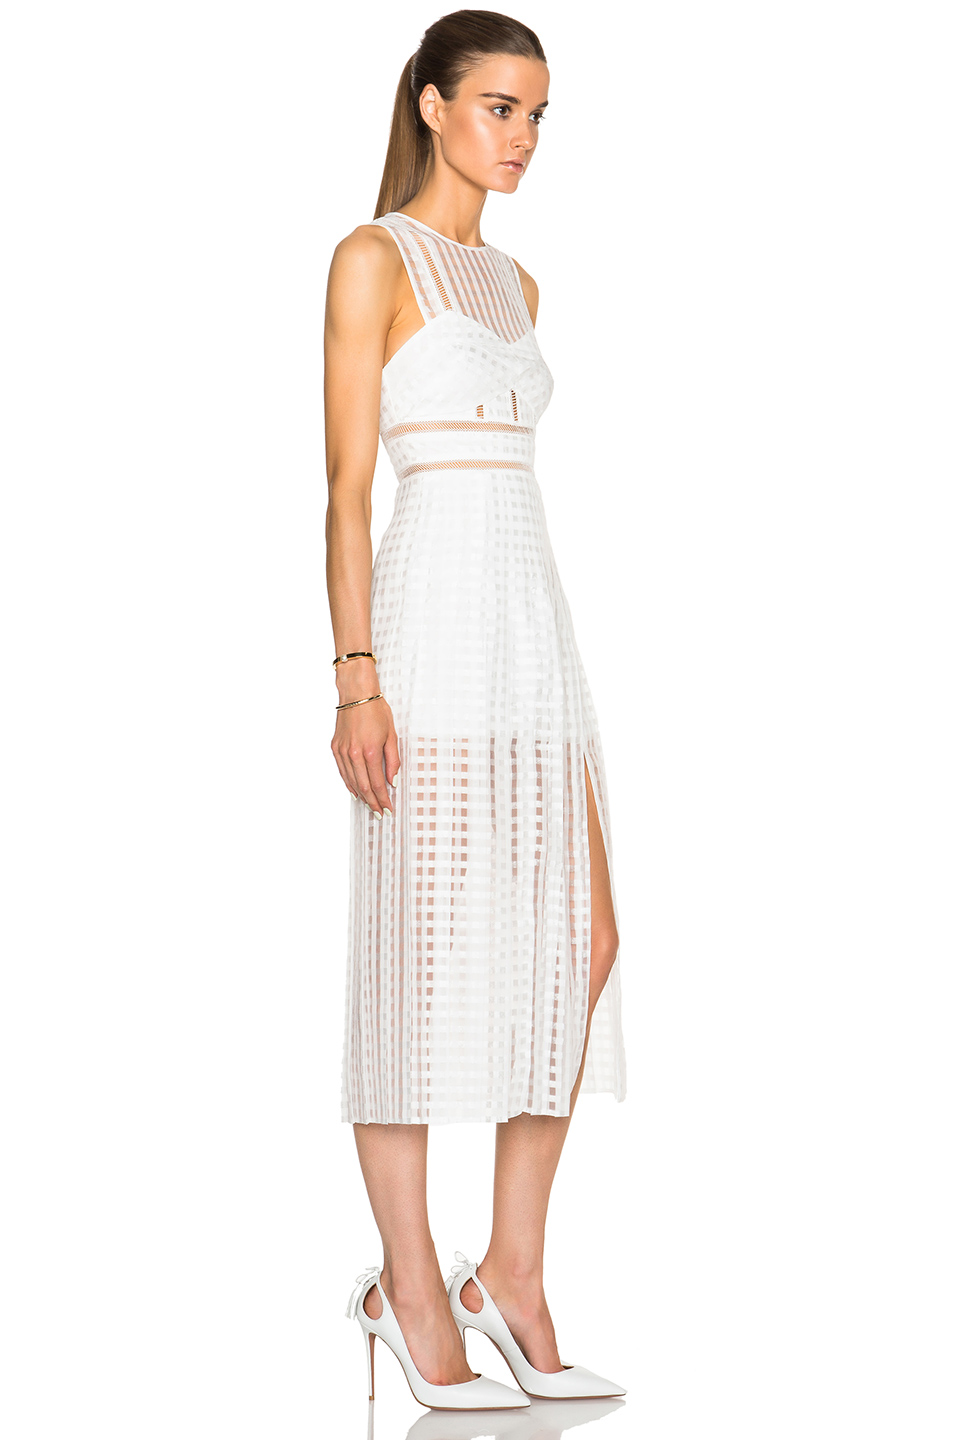 Herve Leger White Transparent Hollow Lined Long Dress